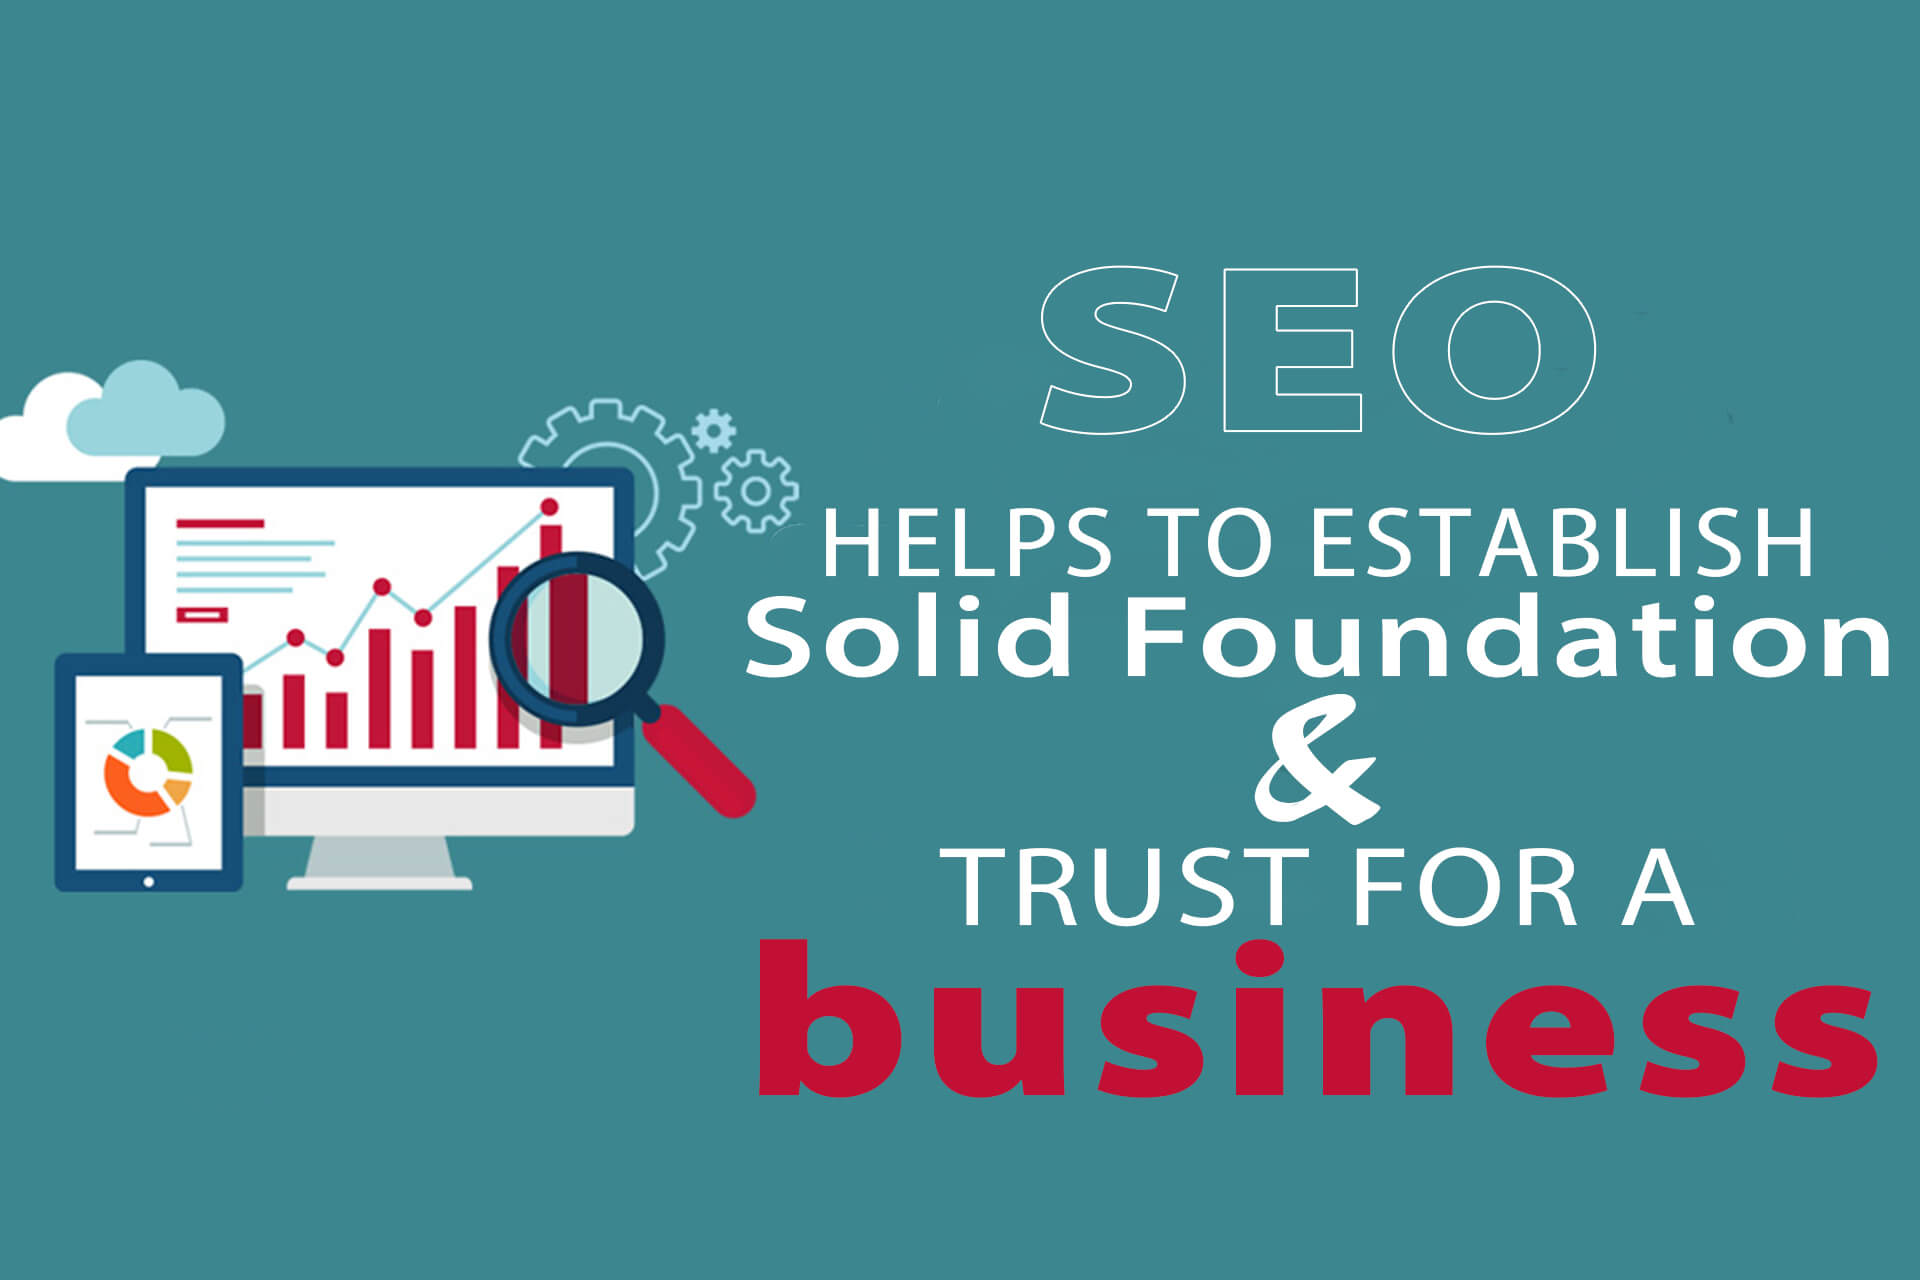 SEO Helps To Establish Solid Foundation & Trust For A Business